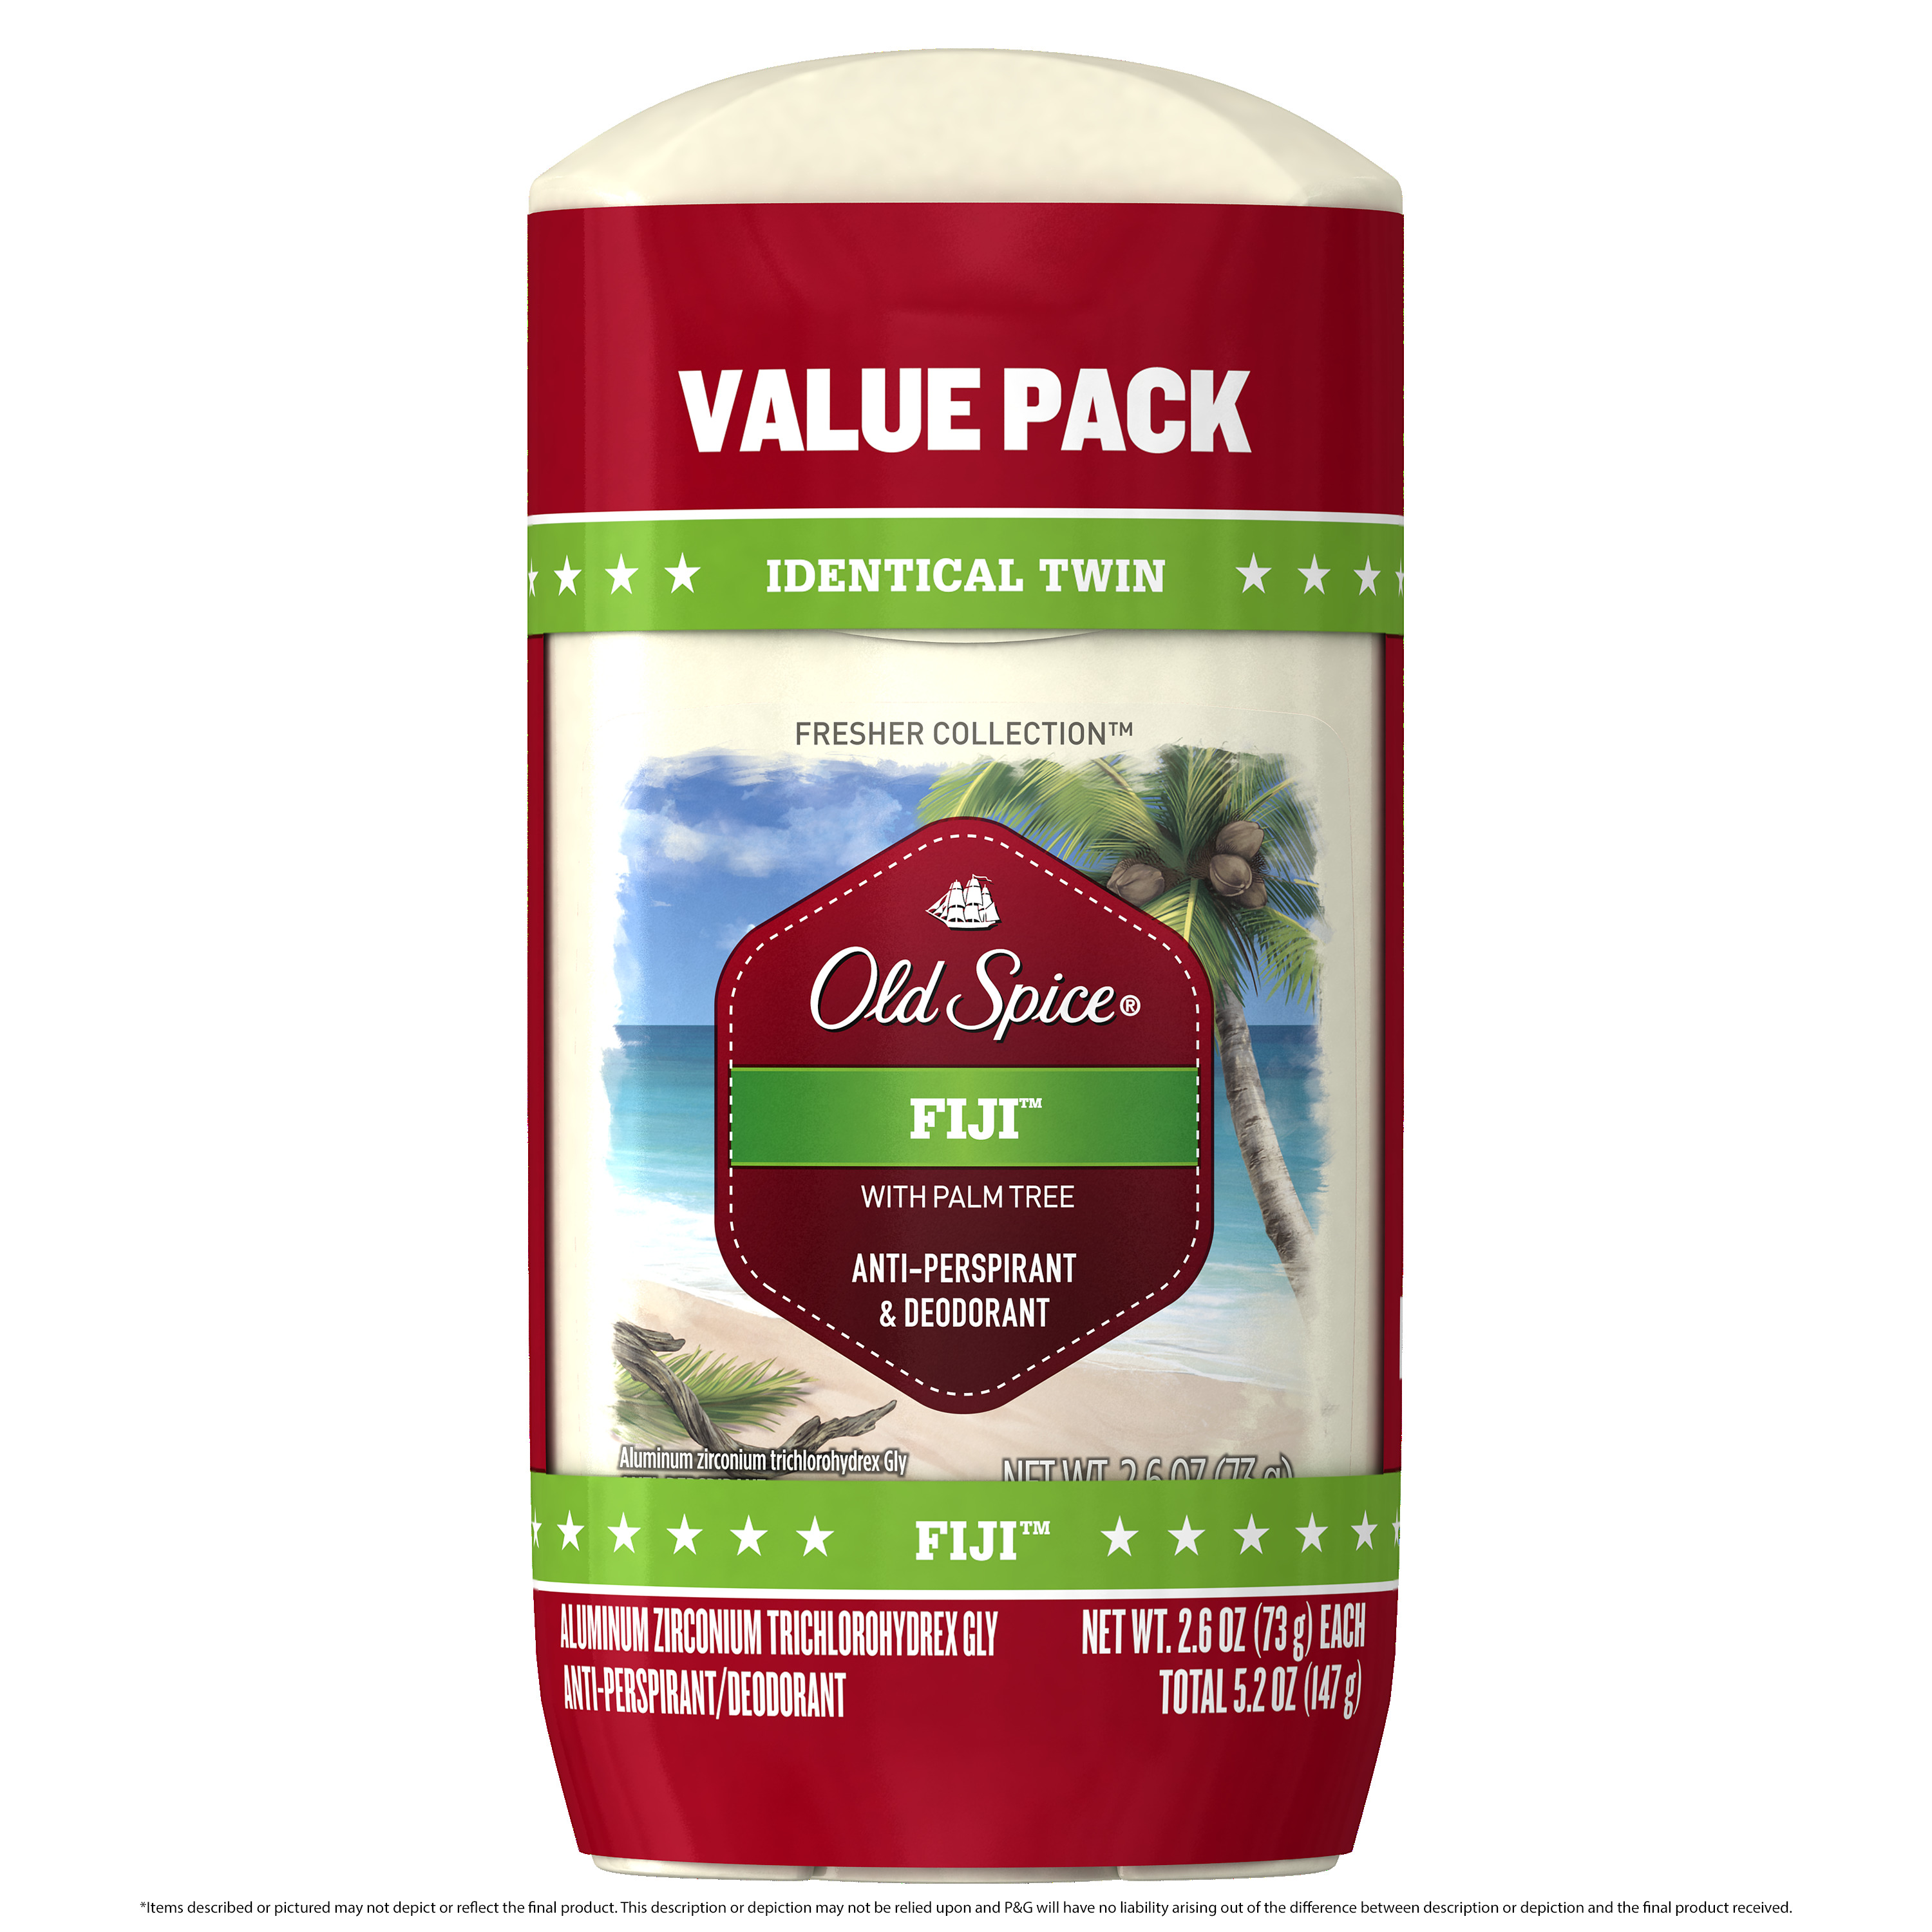 Old Spice Fresh Collection Fiji Antiperspirant and Deodorant 2.6 oz Twin